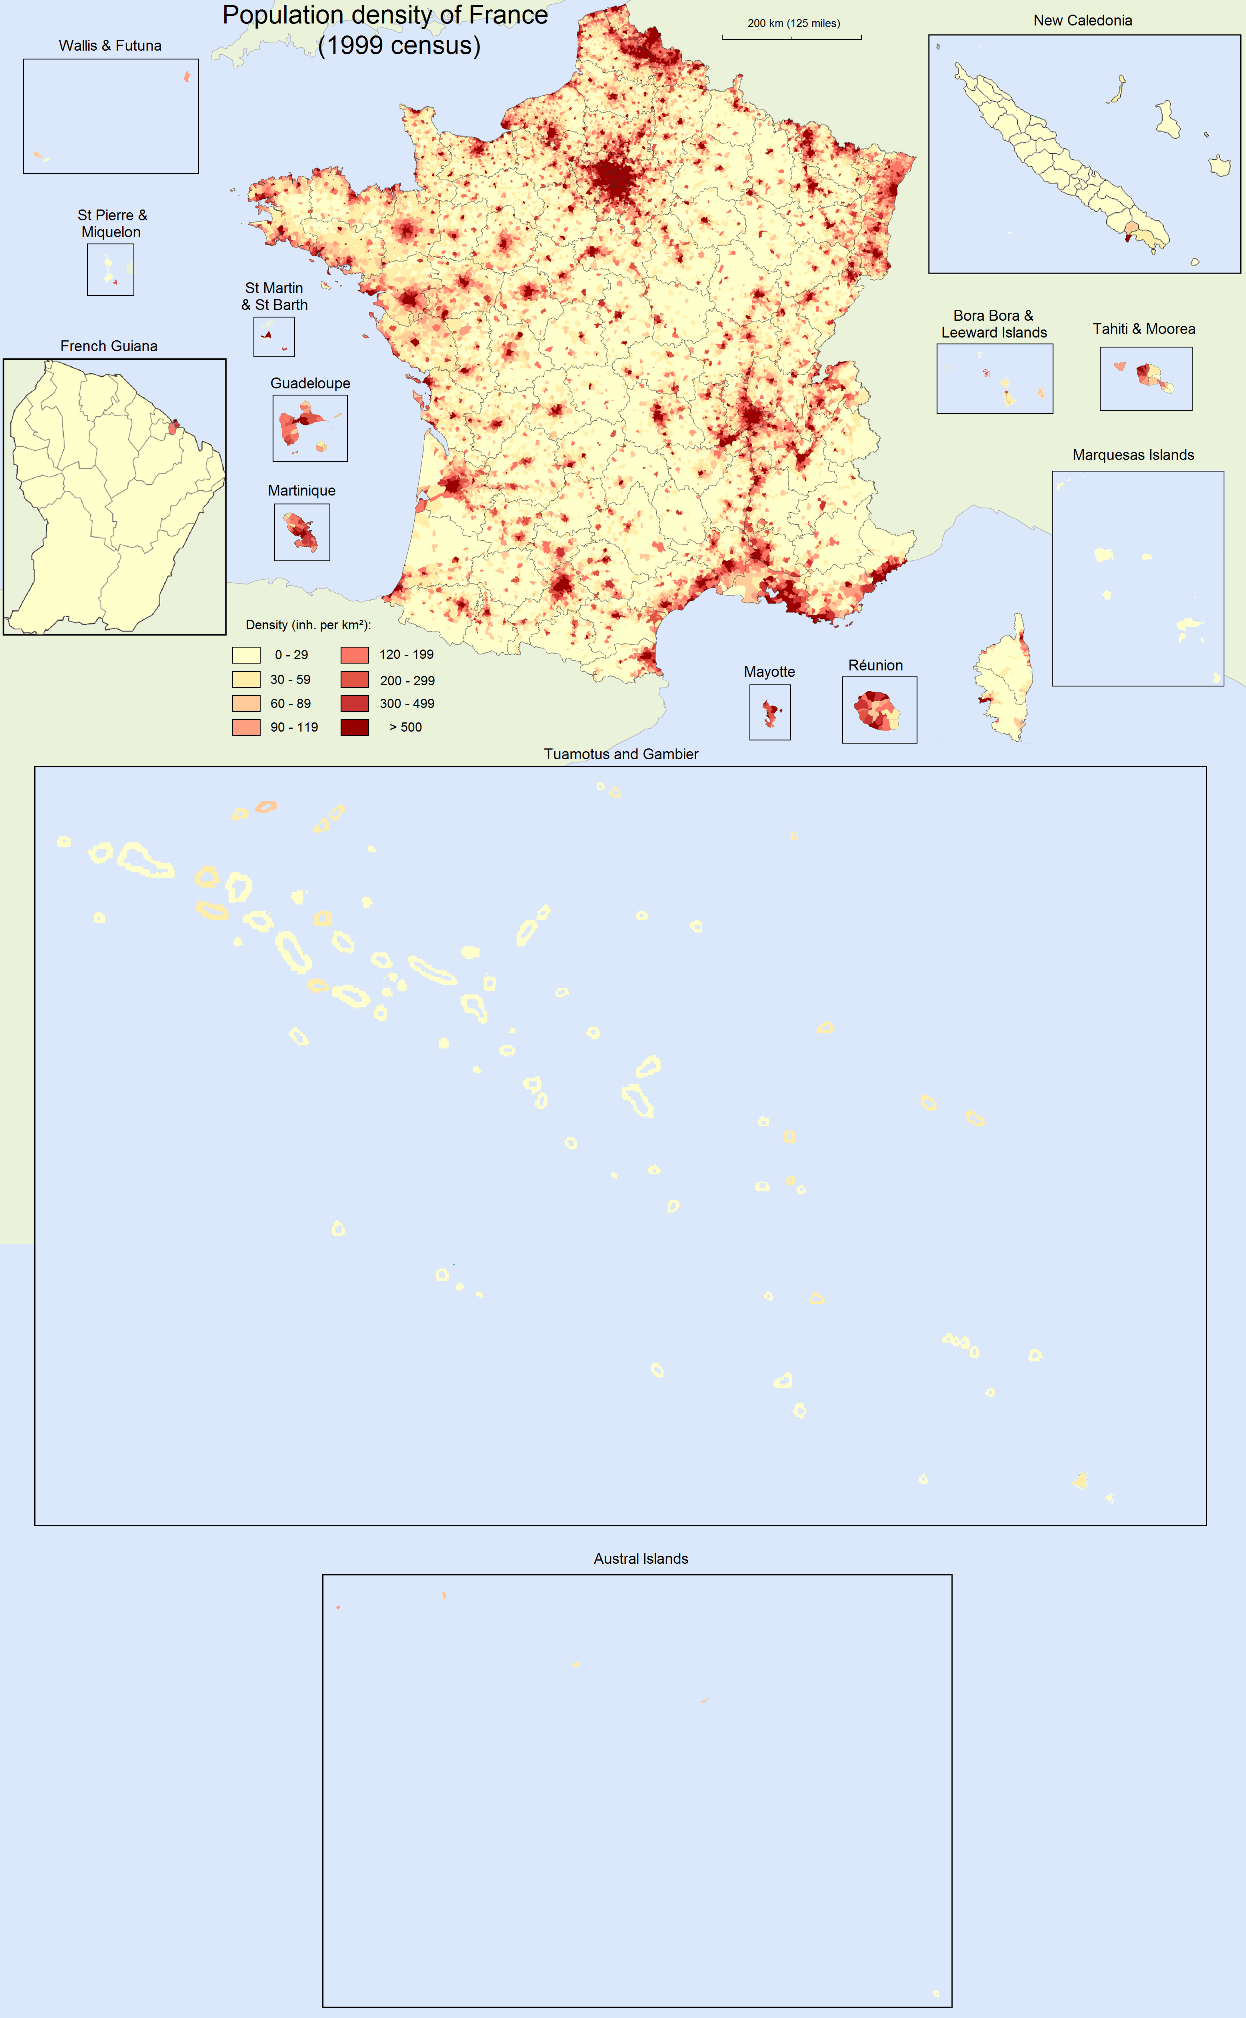 France Map Png.Vaizdas France Population Density 40pc Png Vikipedija